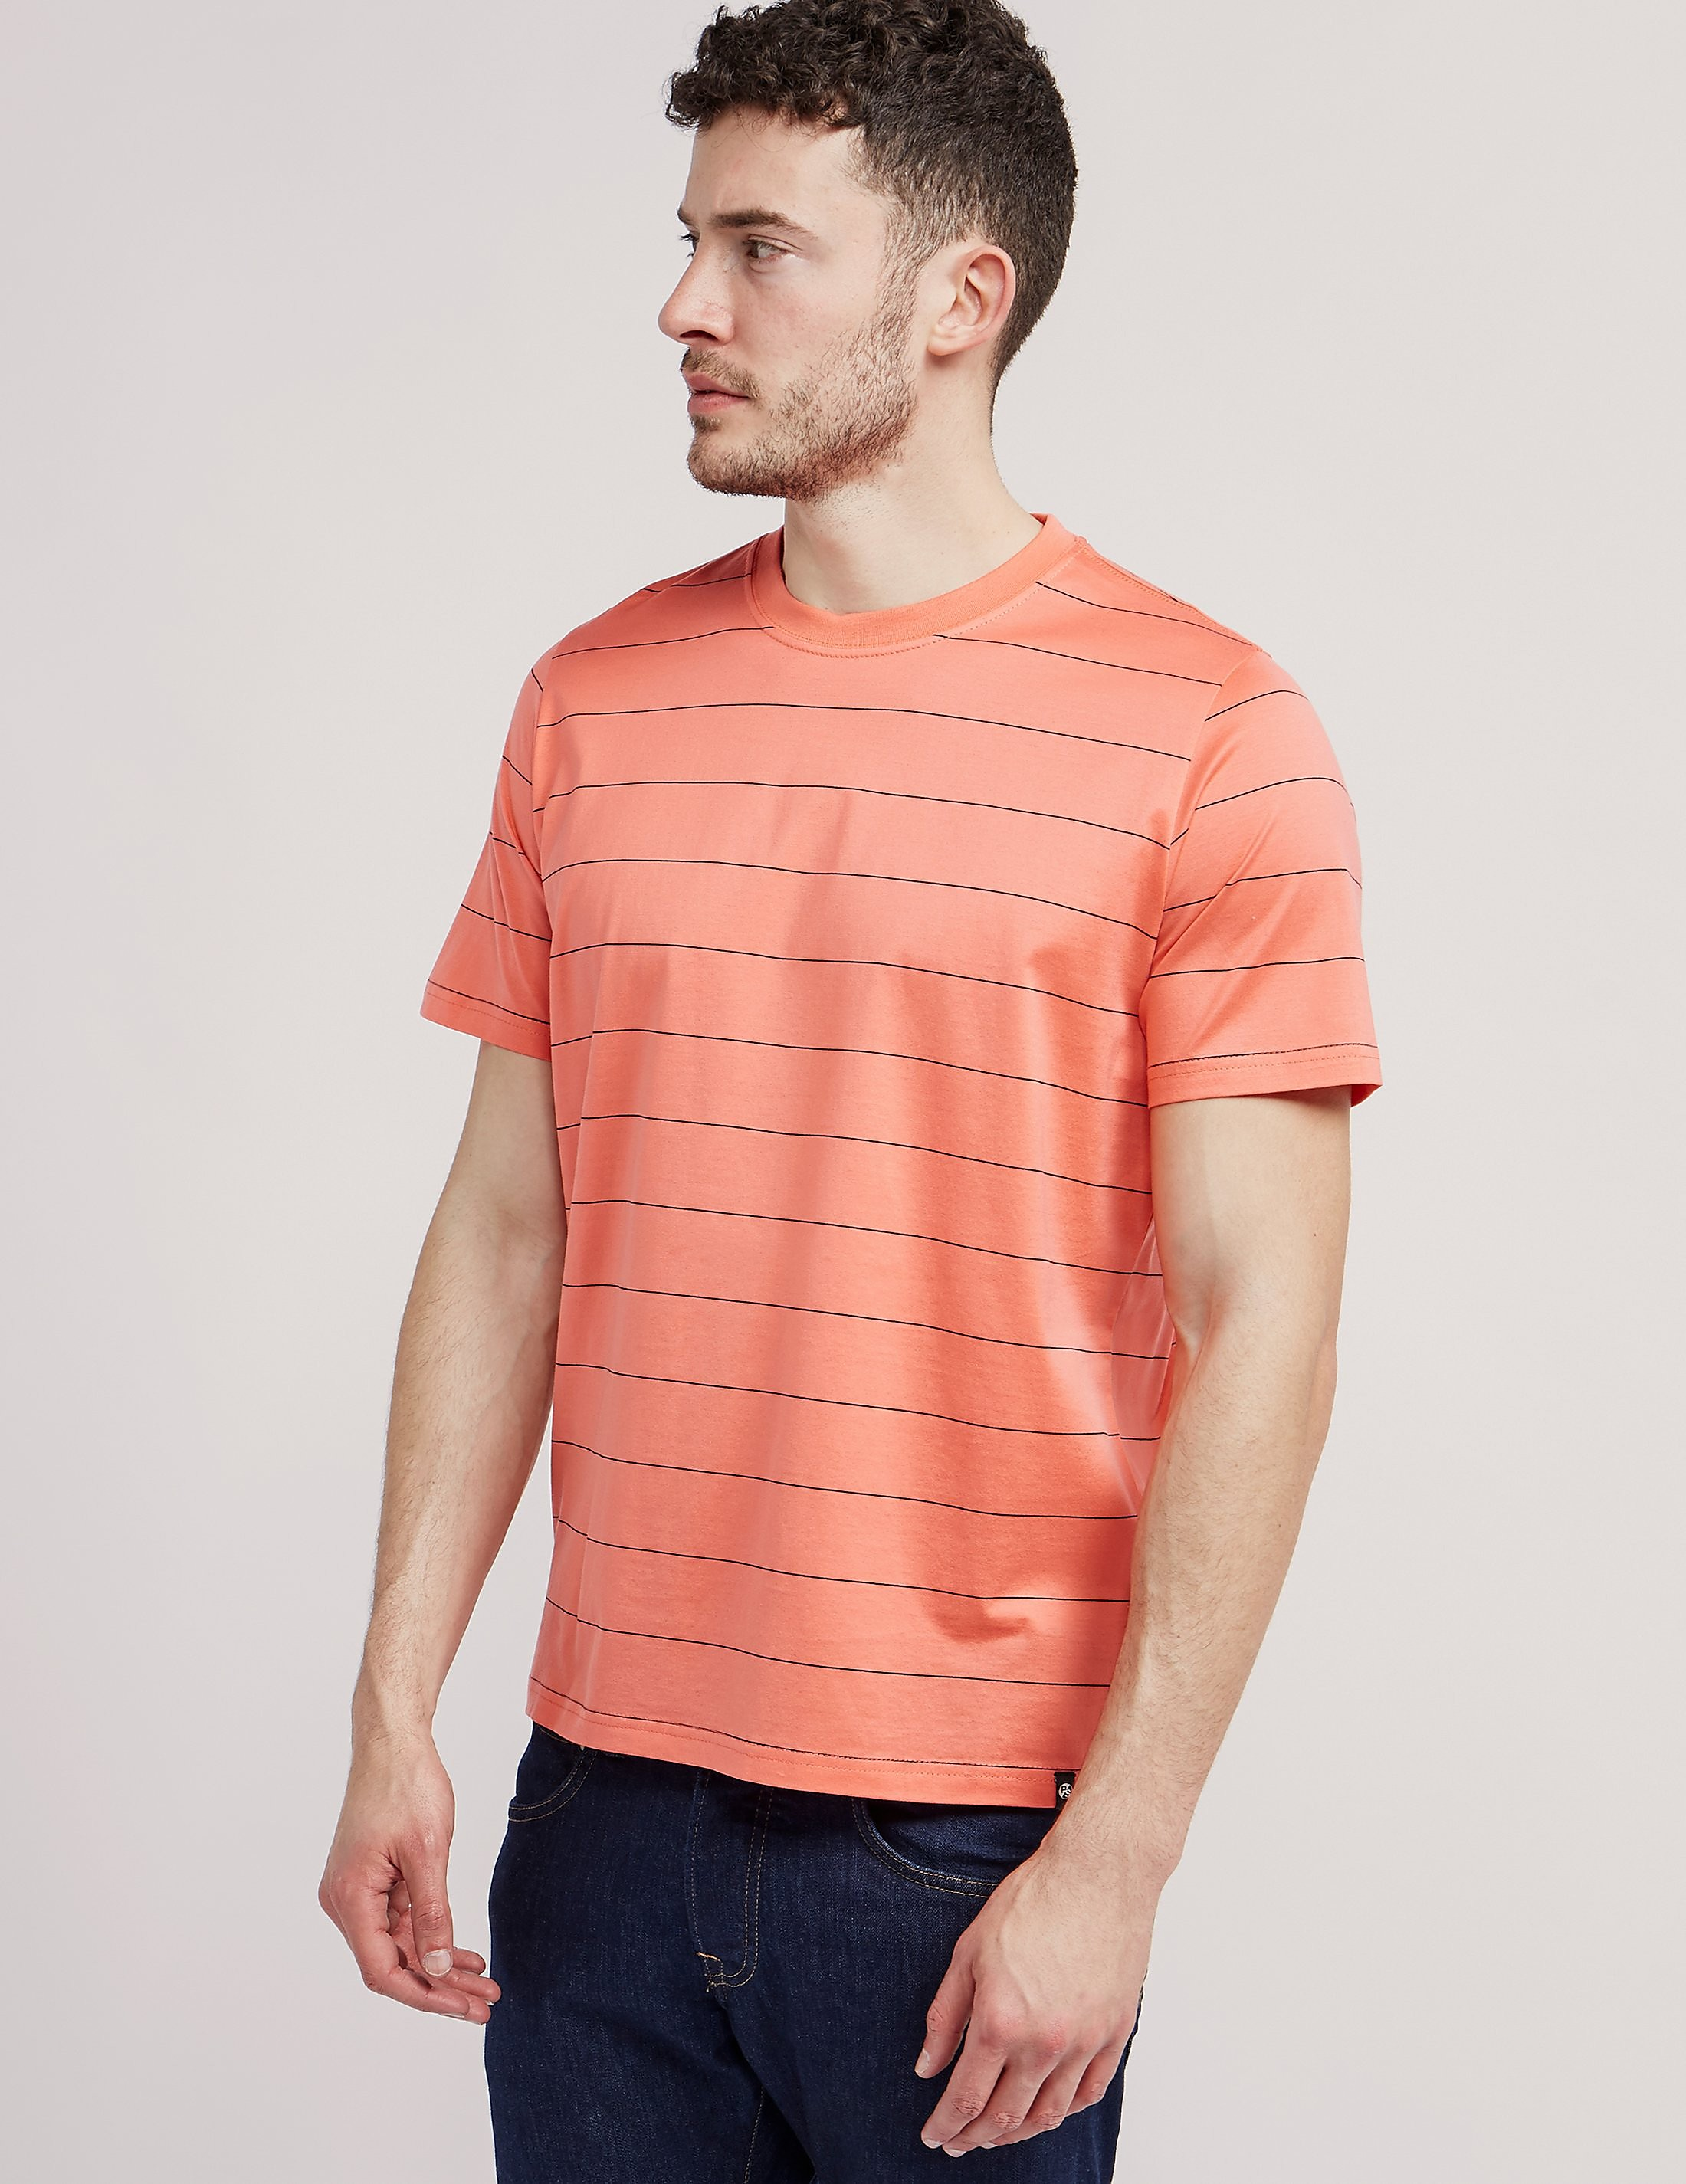 Paul Smith Pin Stripe Crew Short Sleeve T-Shirt